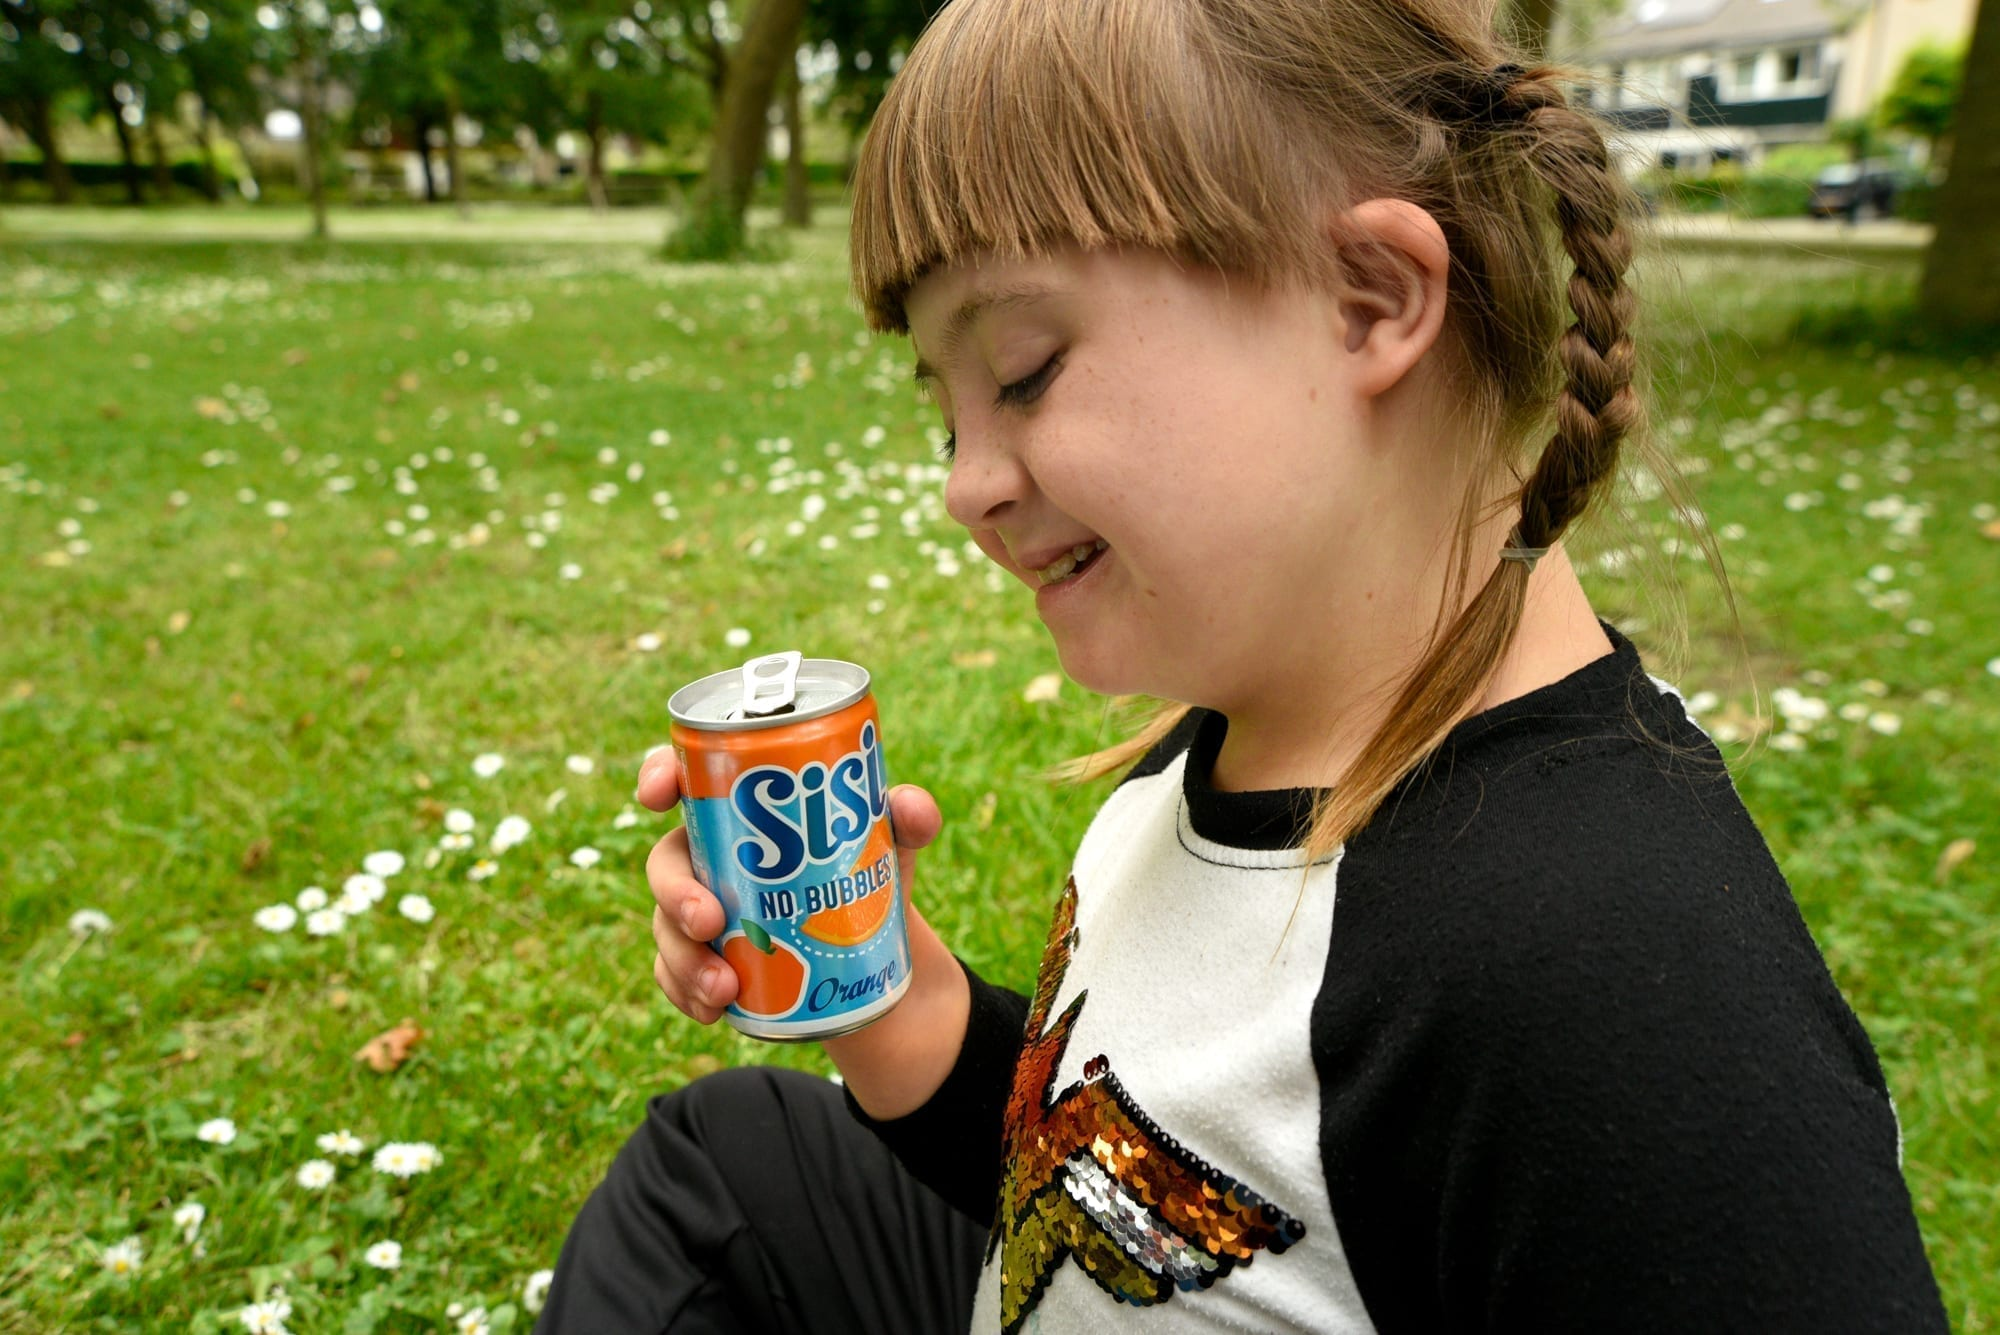 moxie in a park with a can of orange juice